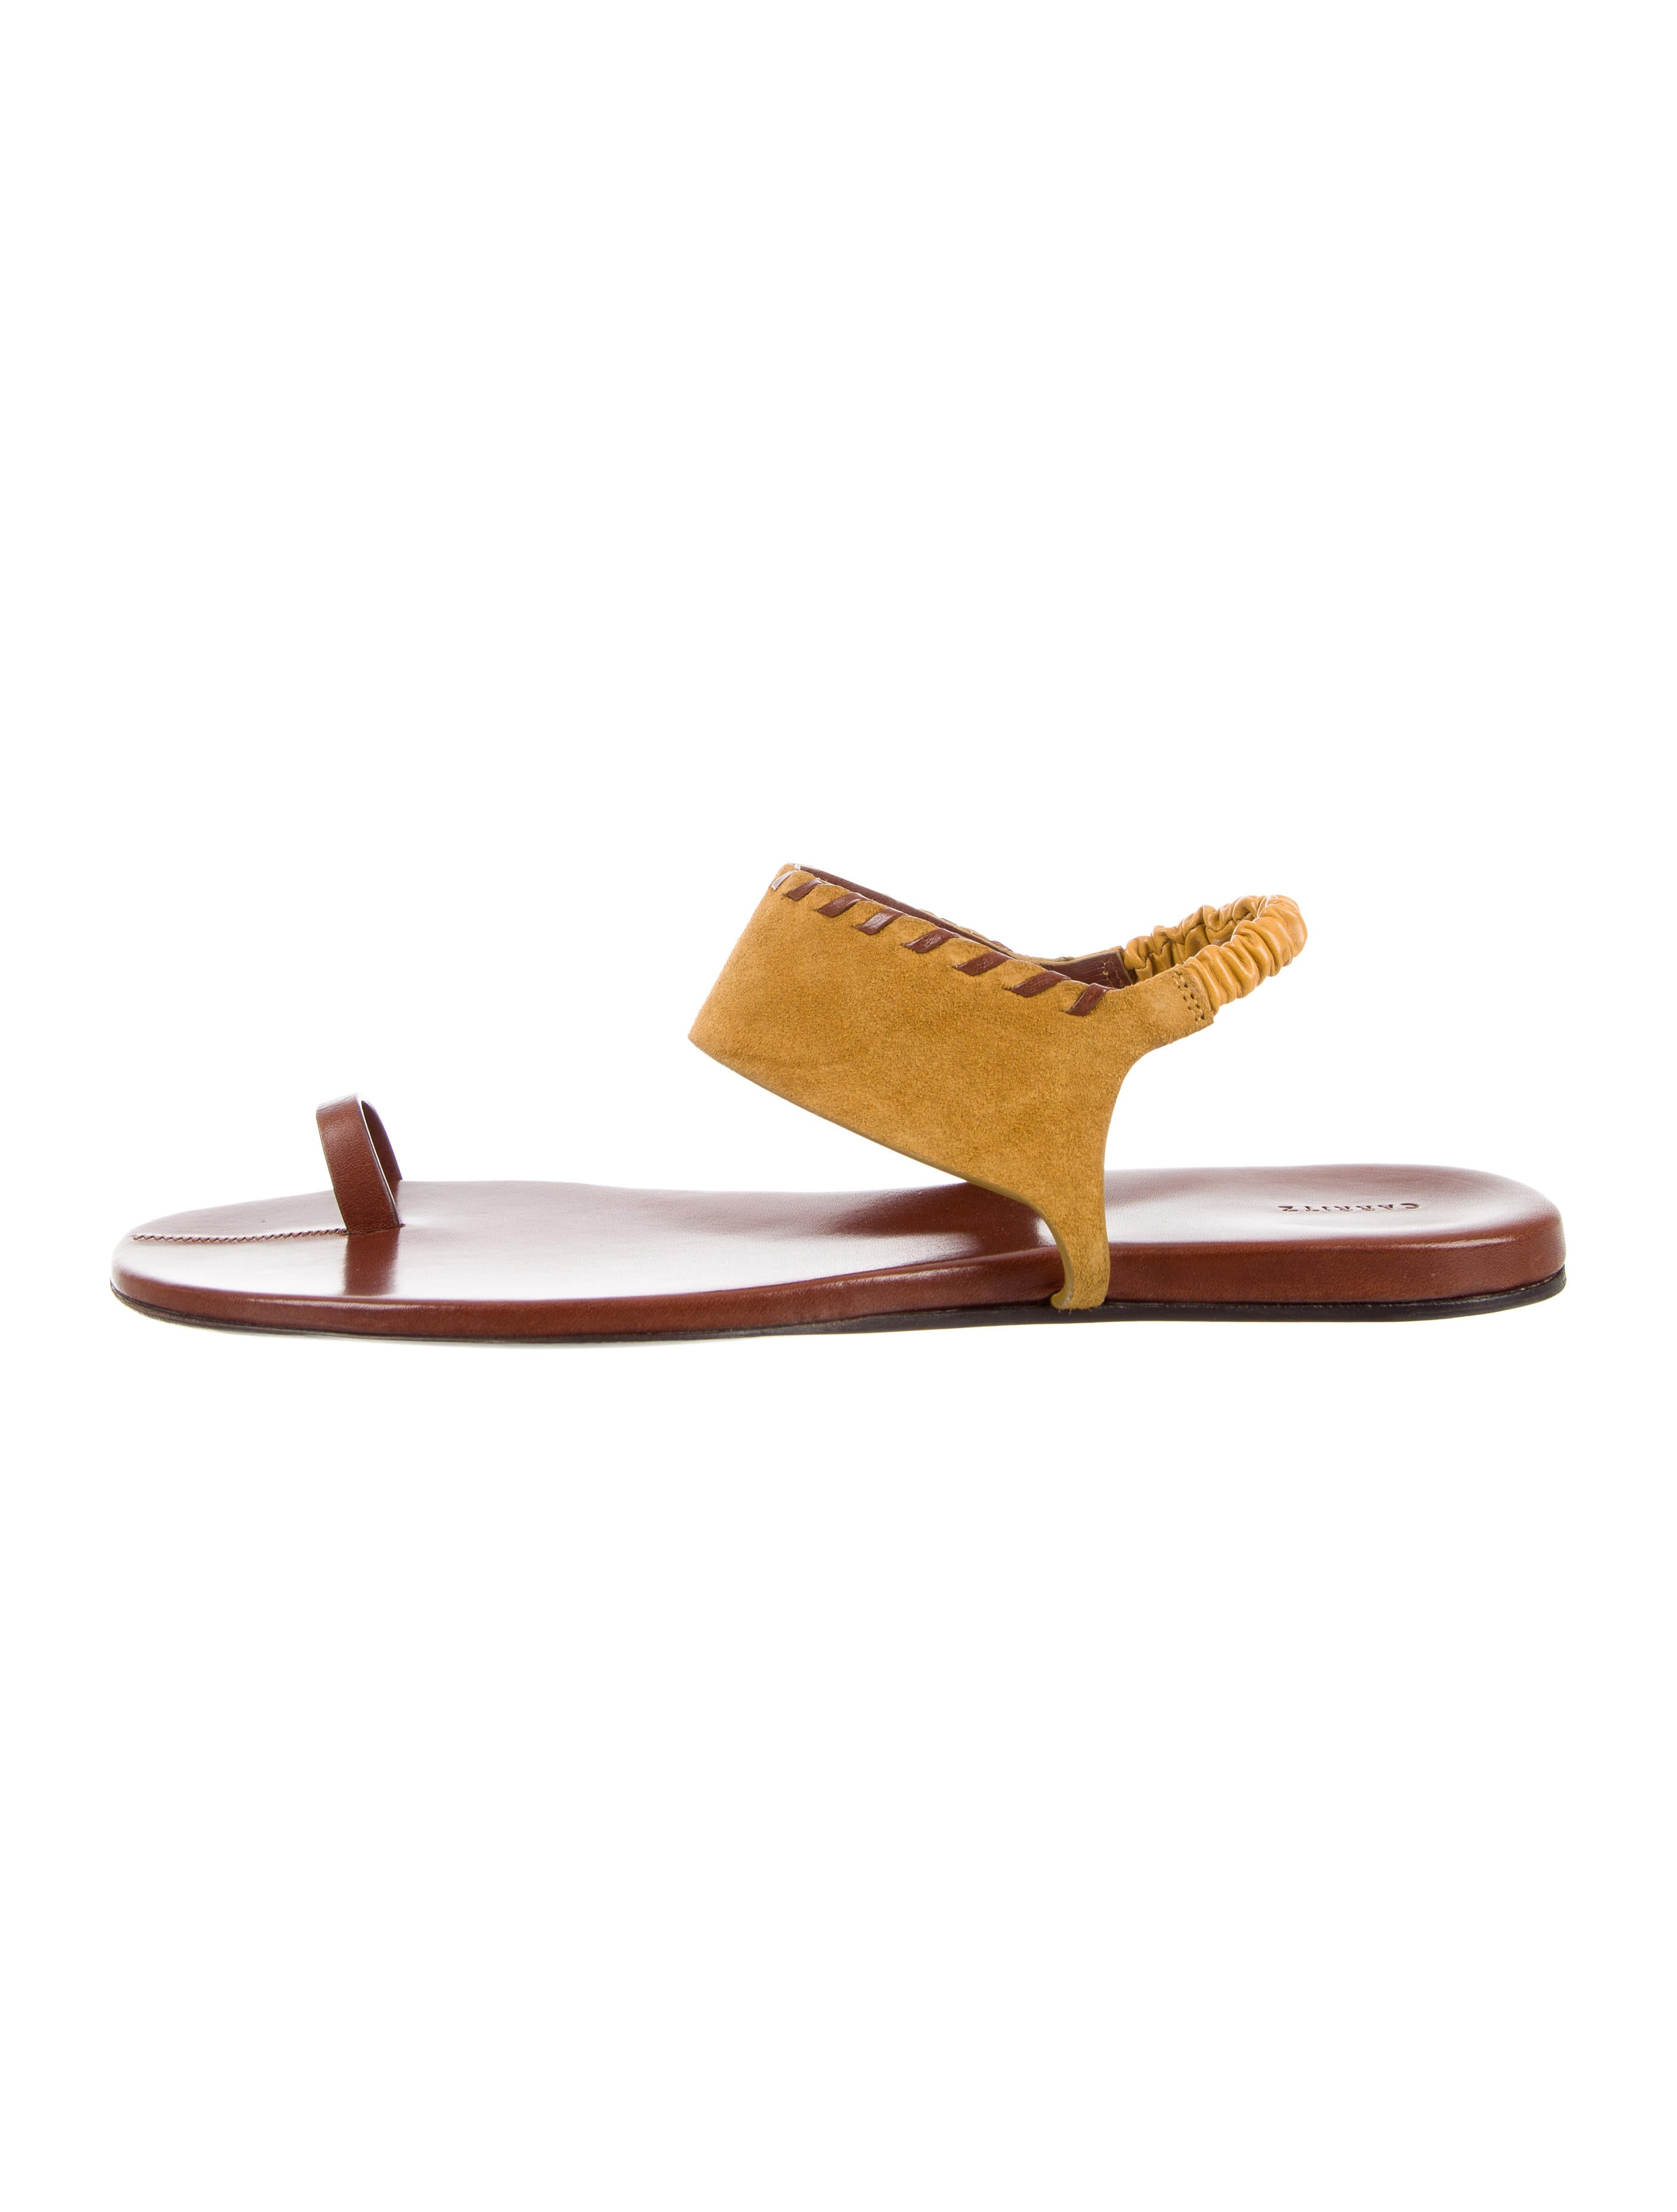 Carritz Leather-Trimmed Suede Sandals w/ Tags clearance how much gNS0Z